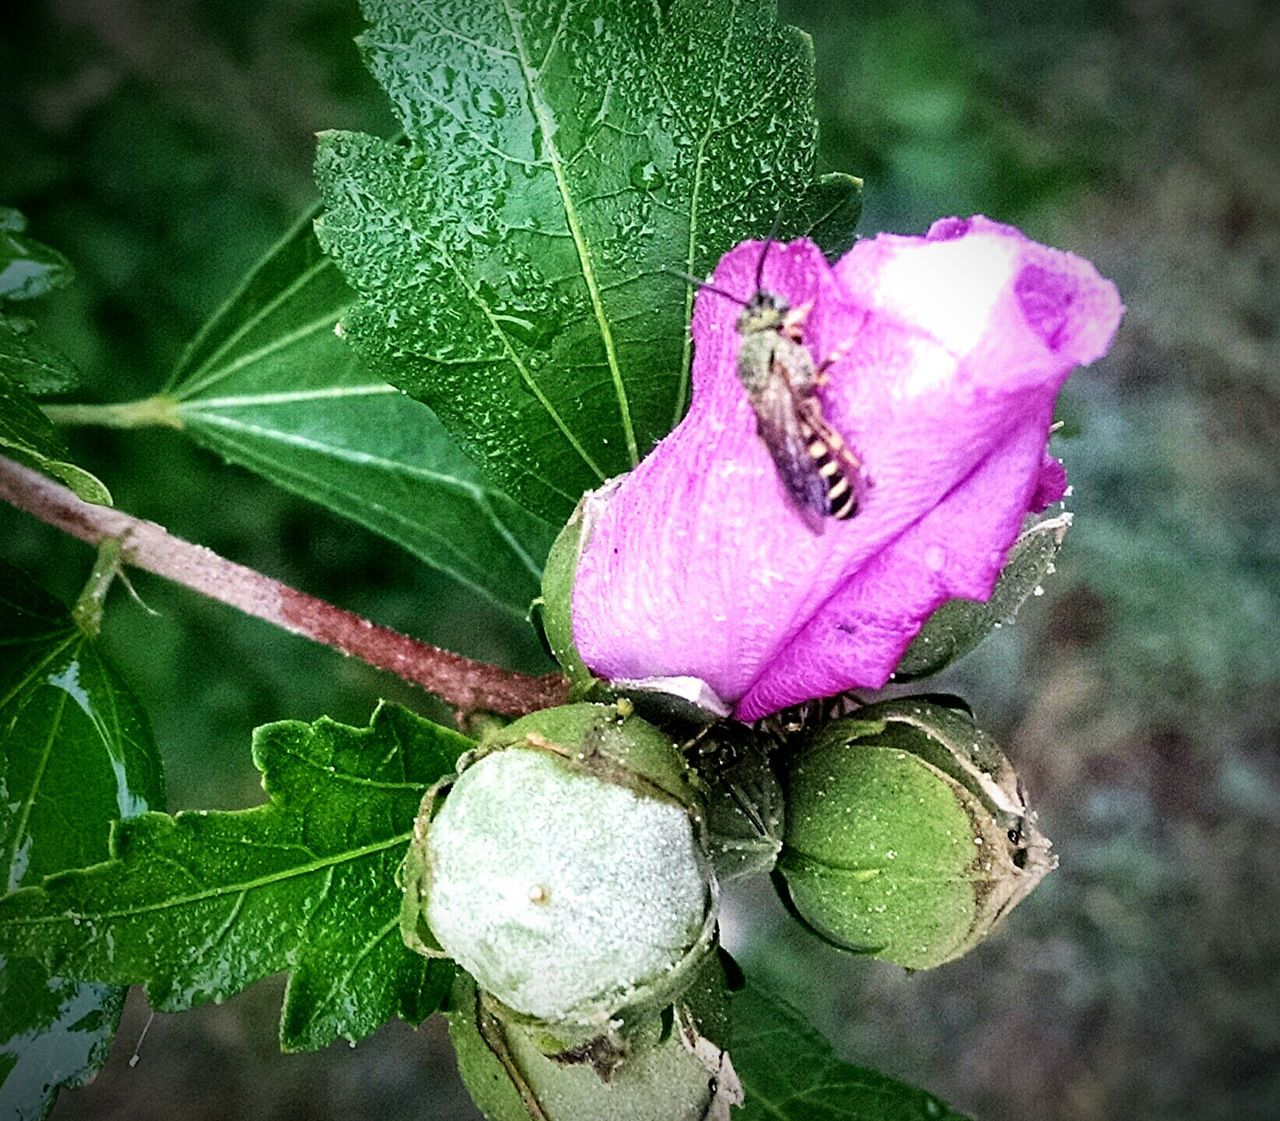 Rose Of Sharon Garden Photography Flower Collection Flowers,Plants & Garden Bee